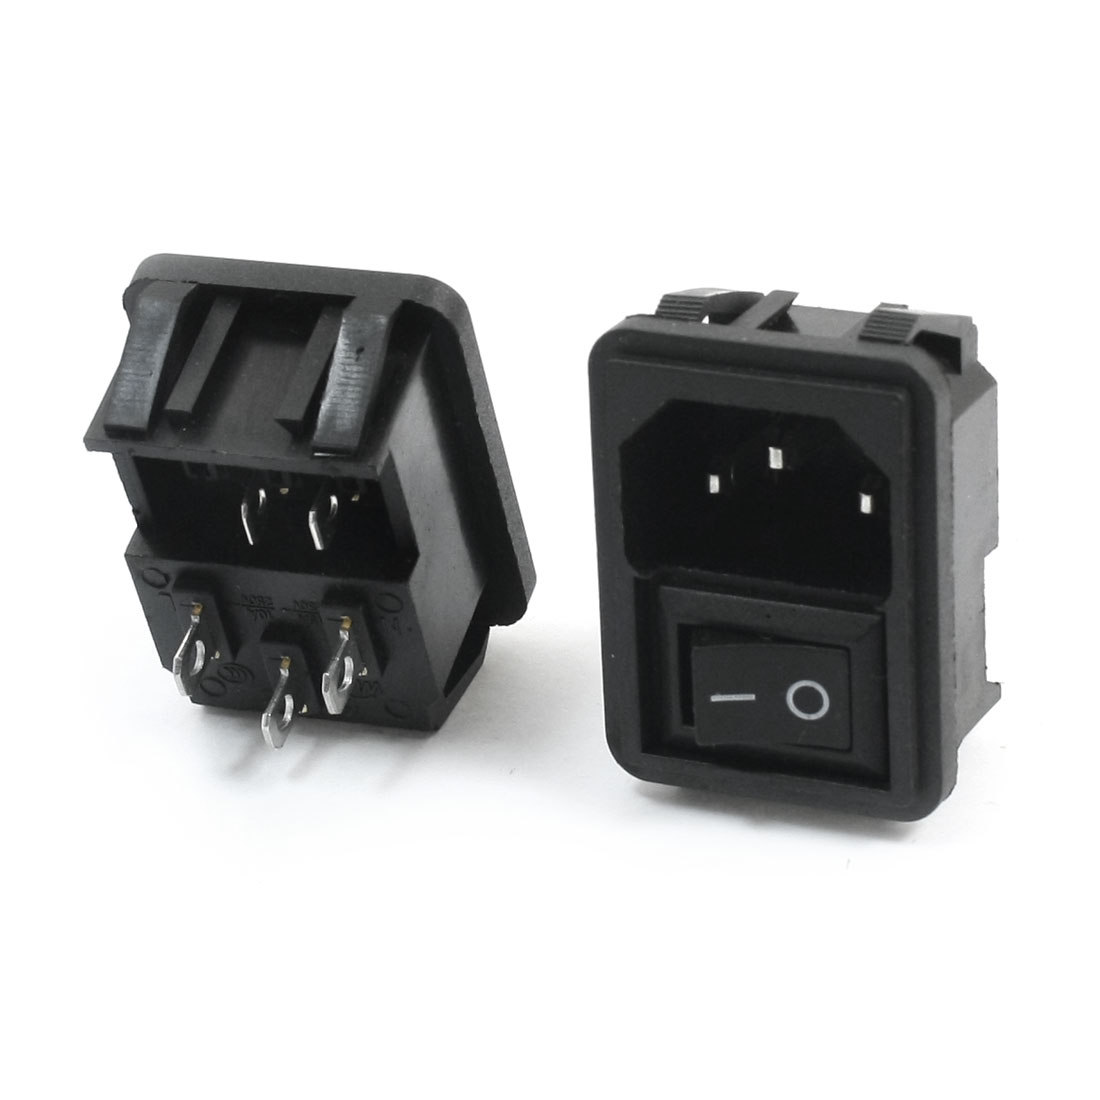 2Pcs Black Power Connector AC250V 10A + Rocker Switch